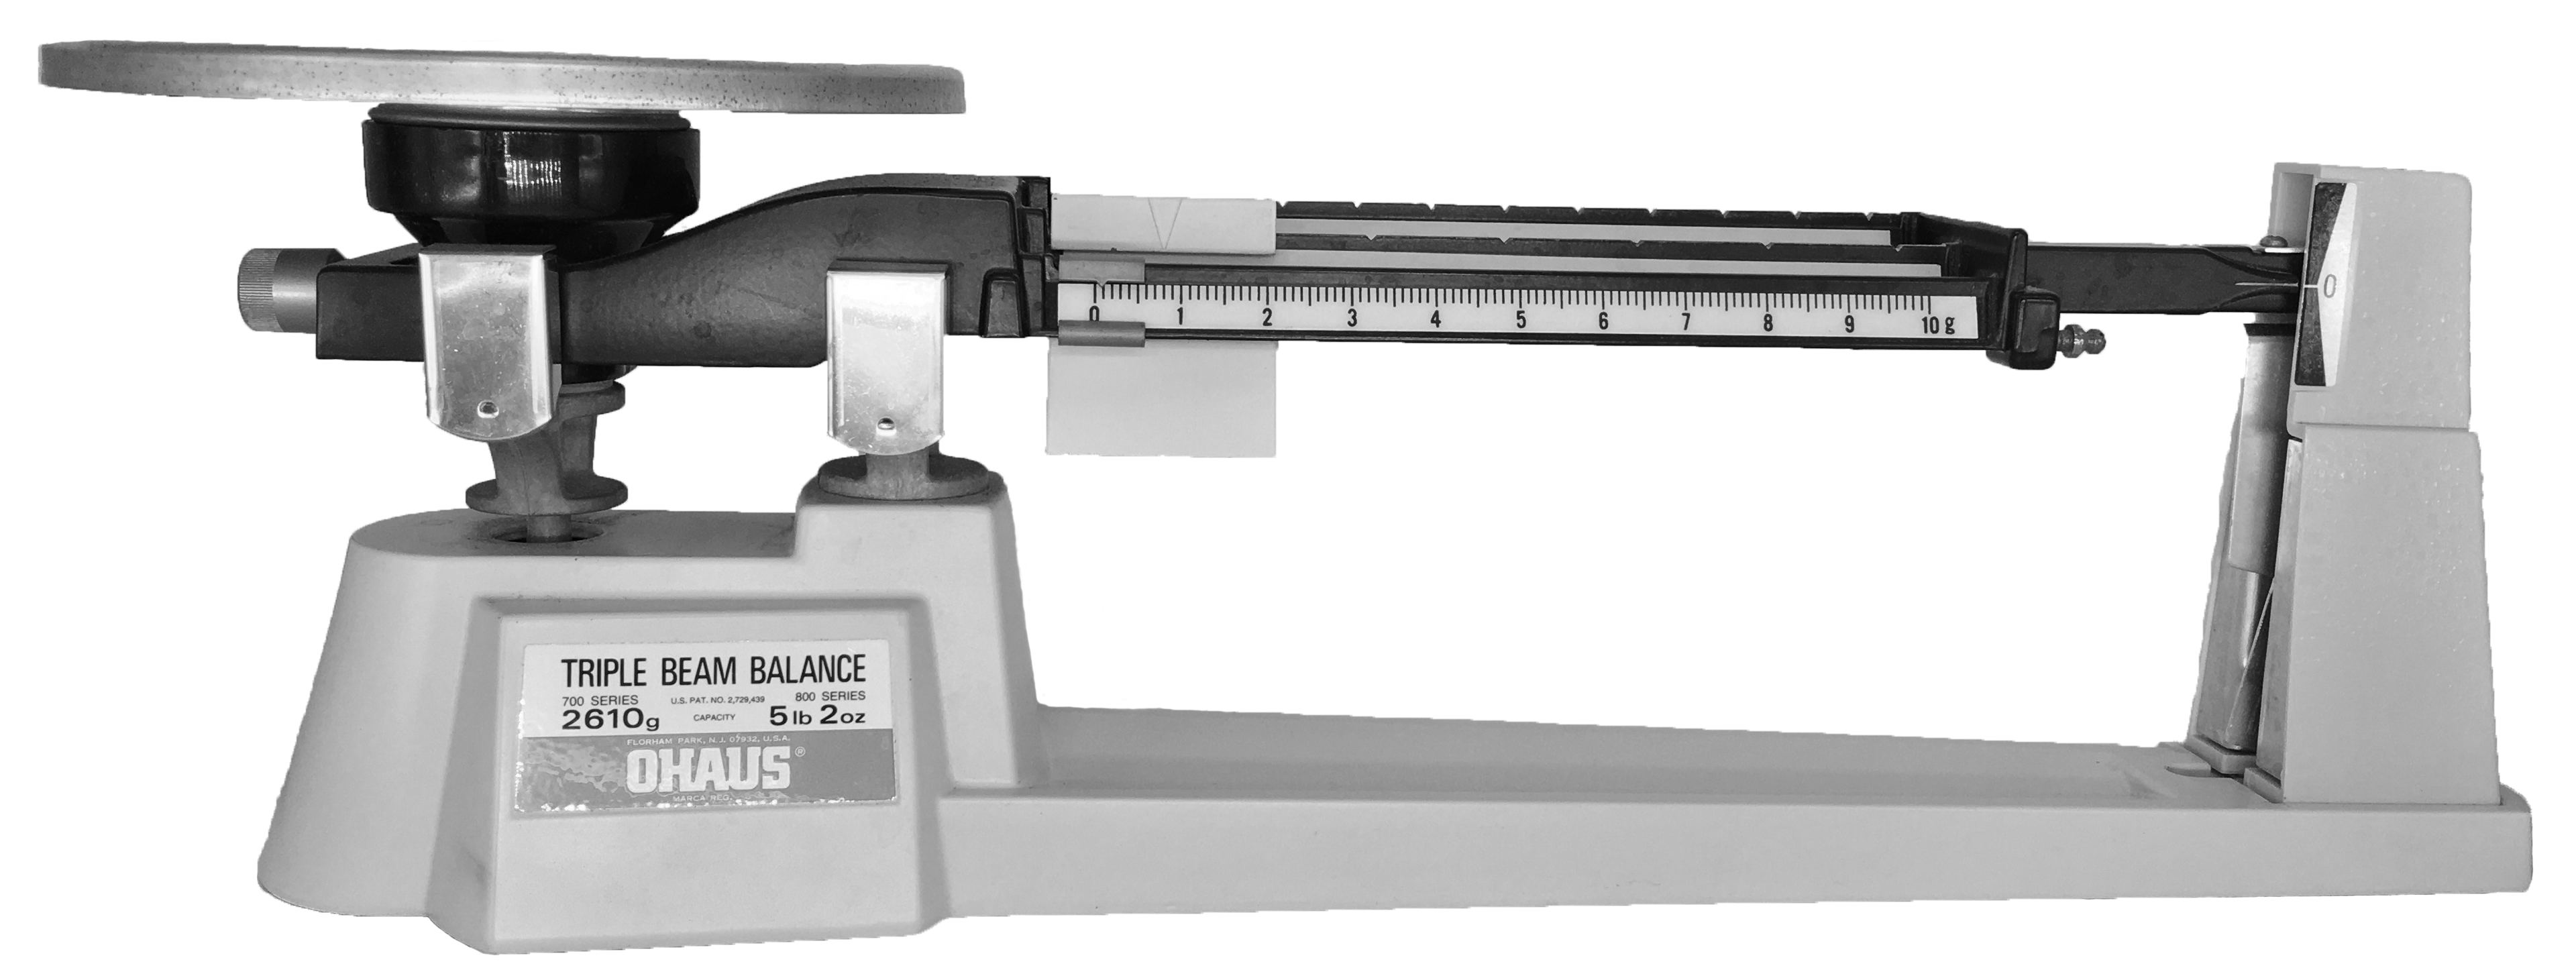 file triple beam balance png wikimedia commons